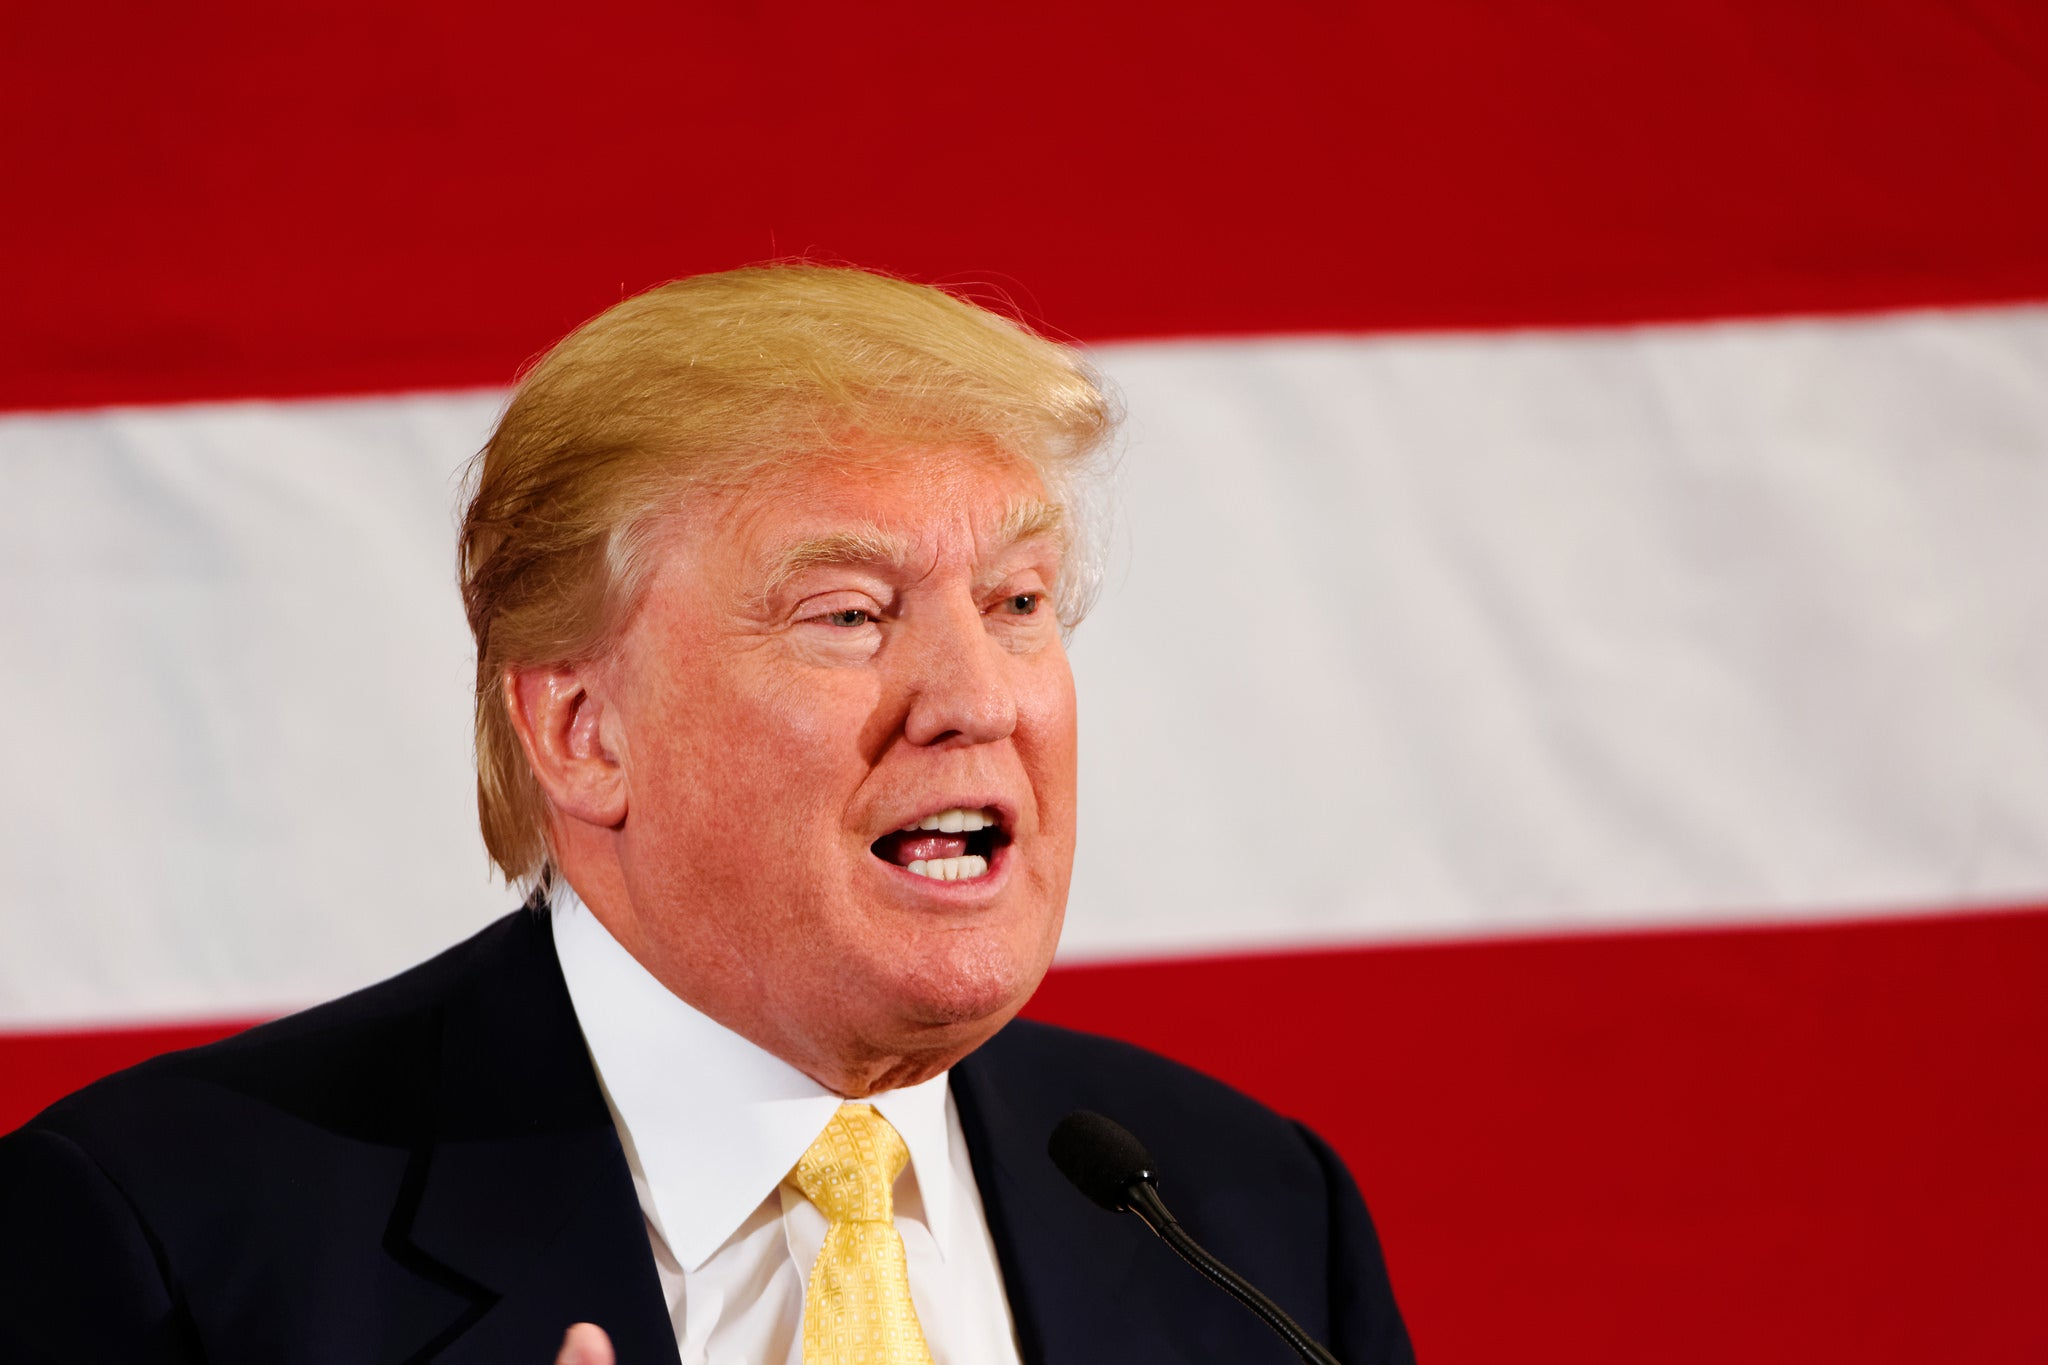 Donald Trump Tax Records Show He Could Have Avoided Taxes for